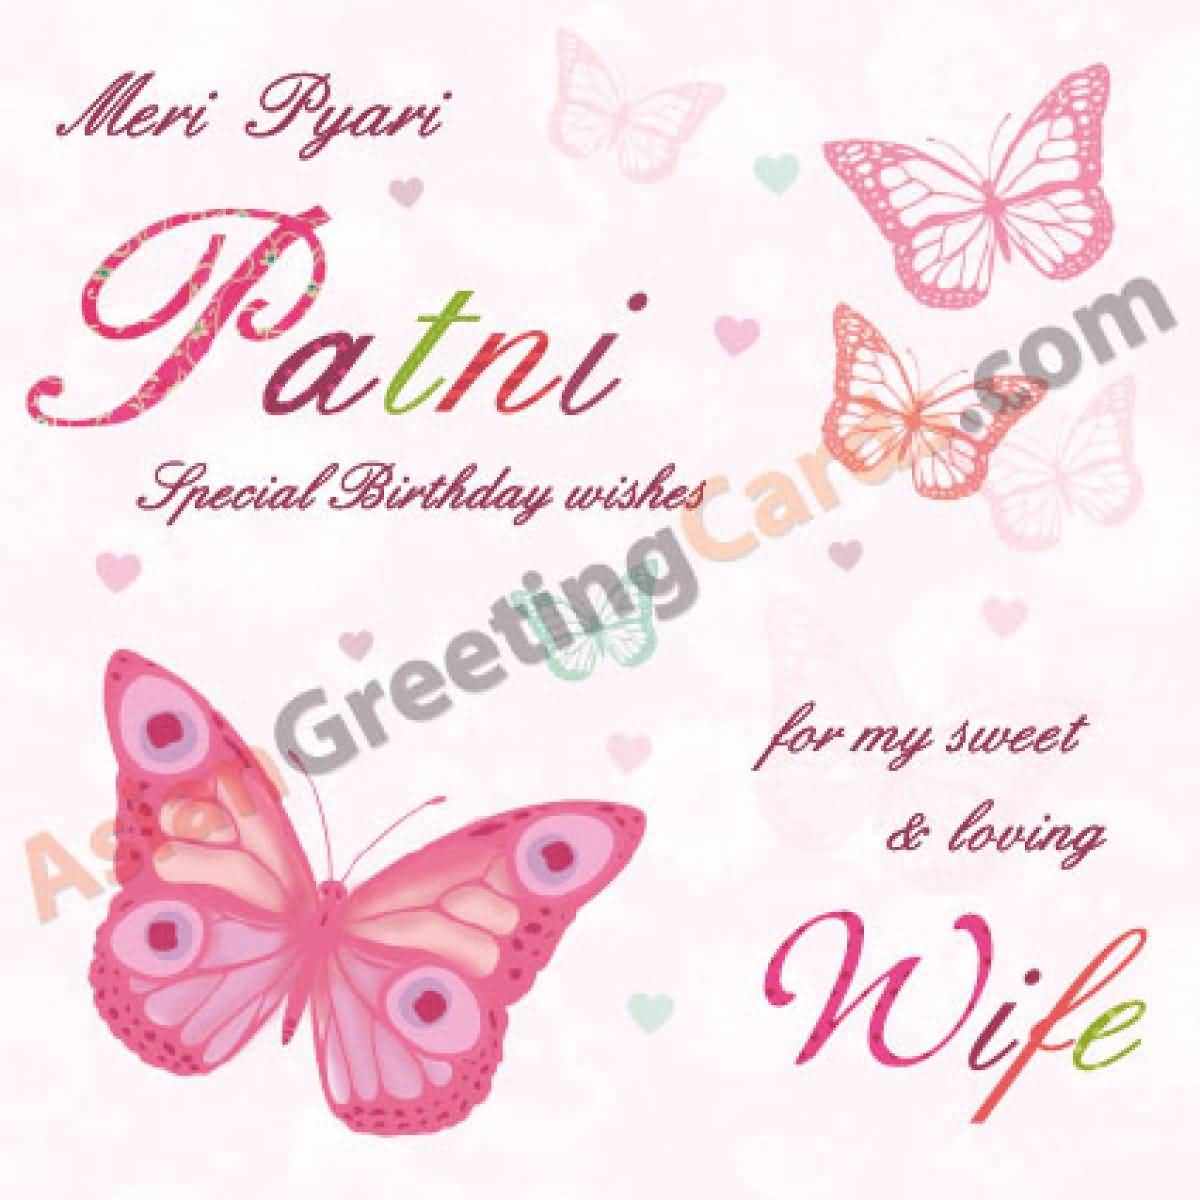 birthday wishes greeting cards for wife ; Patni-wife-special-birthday-wishes-card